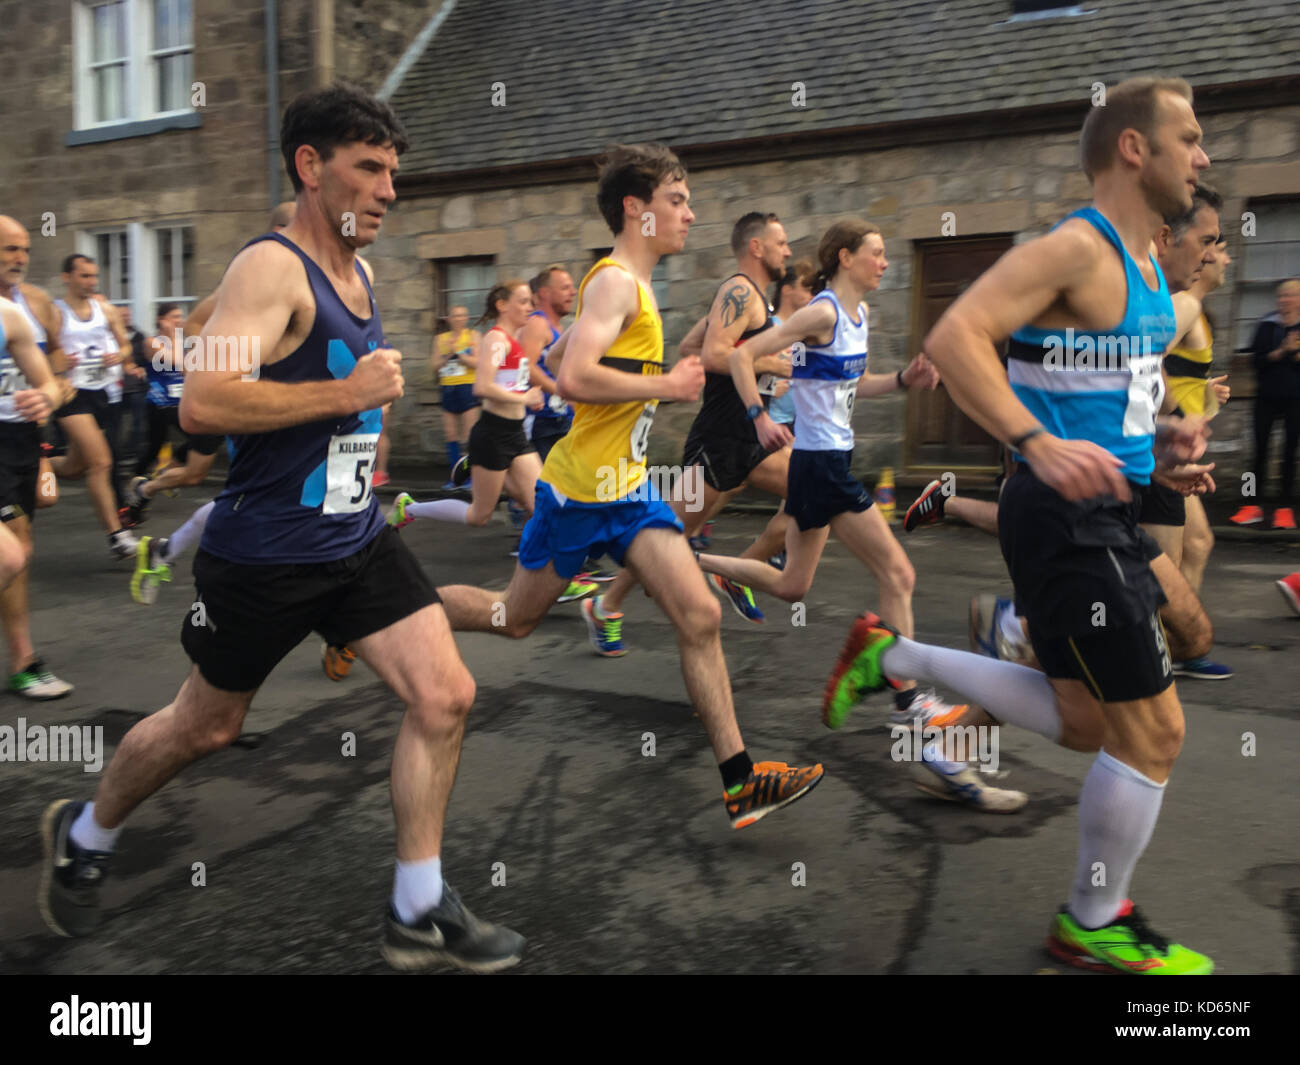 Competitors at the Kilbarchan Amateur Athletics Club George Cummings Road Relay, in Houston, in Scotland, on 7 October - Stock Image